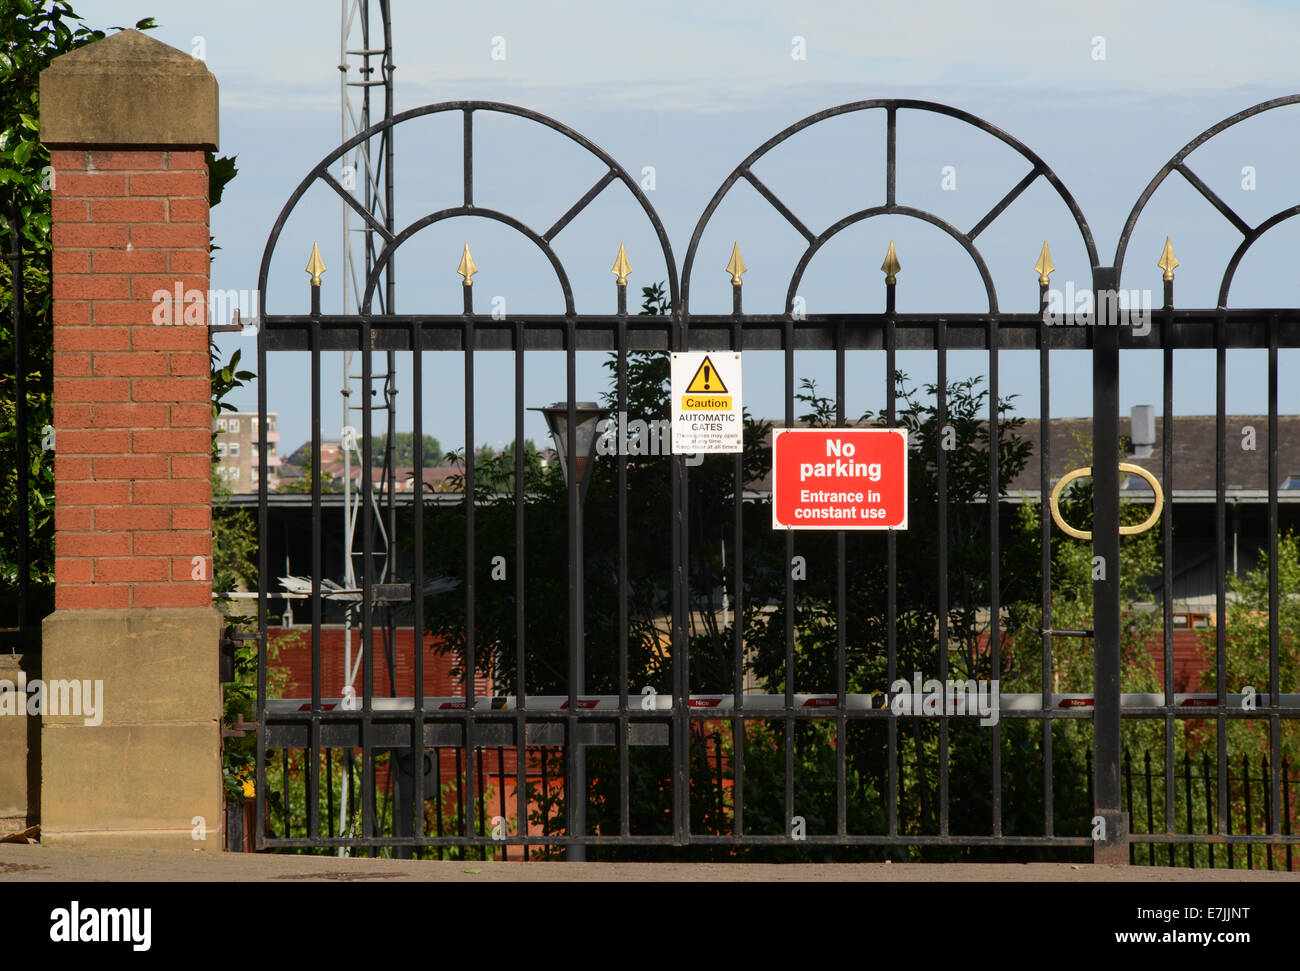 https://c8.alamy.com/comp/E7JJNT/no-parking-notice-in-front-of-locked-gates-to-offices-and-apartments-E7JJNT.jpg